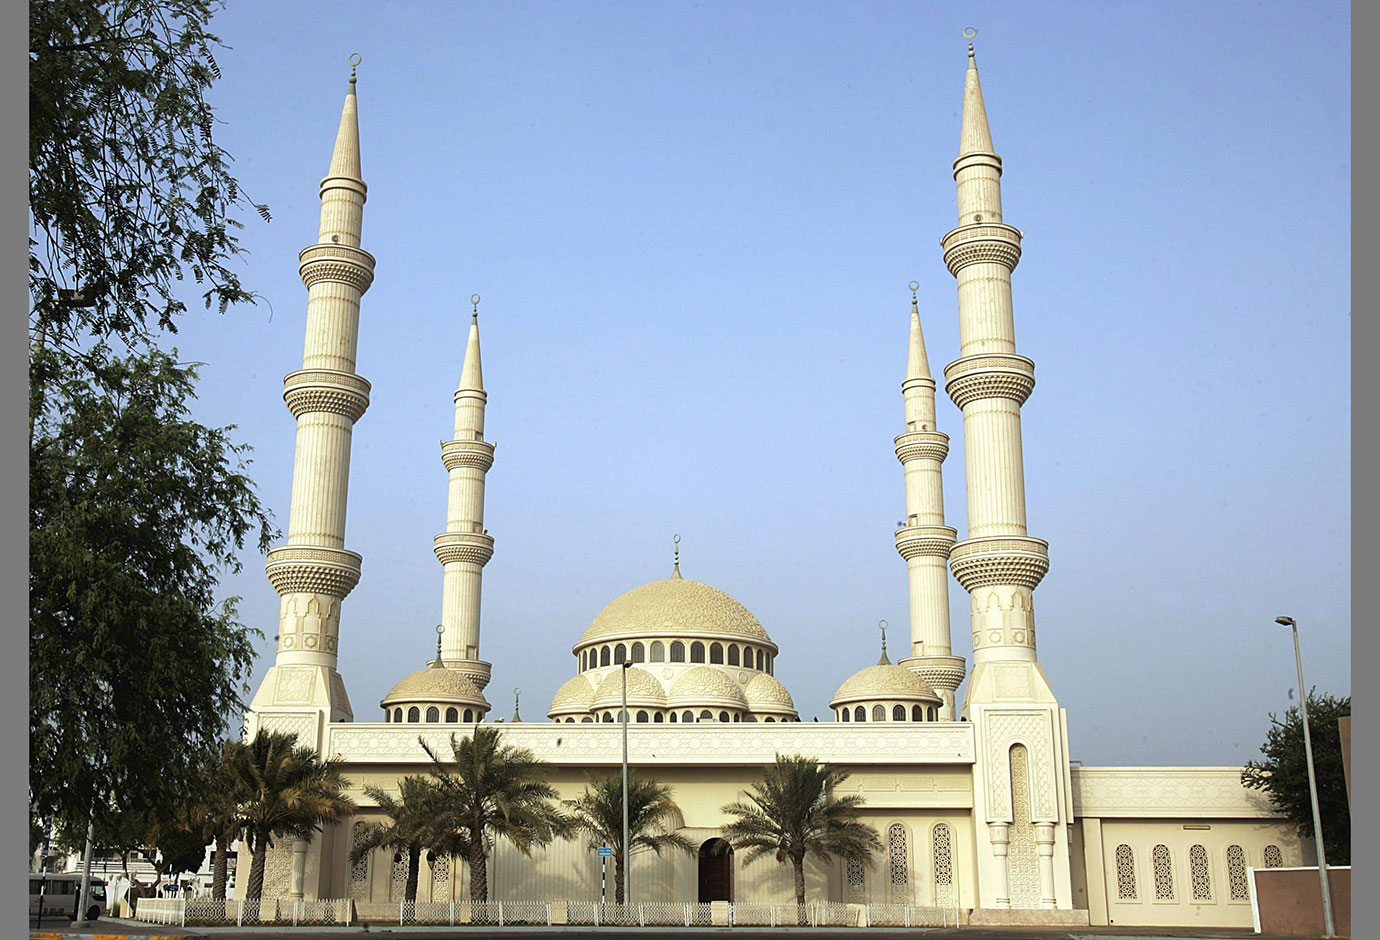 Mary, Jesus' Mother mosque in Abu Dhabi